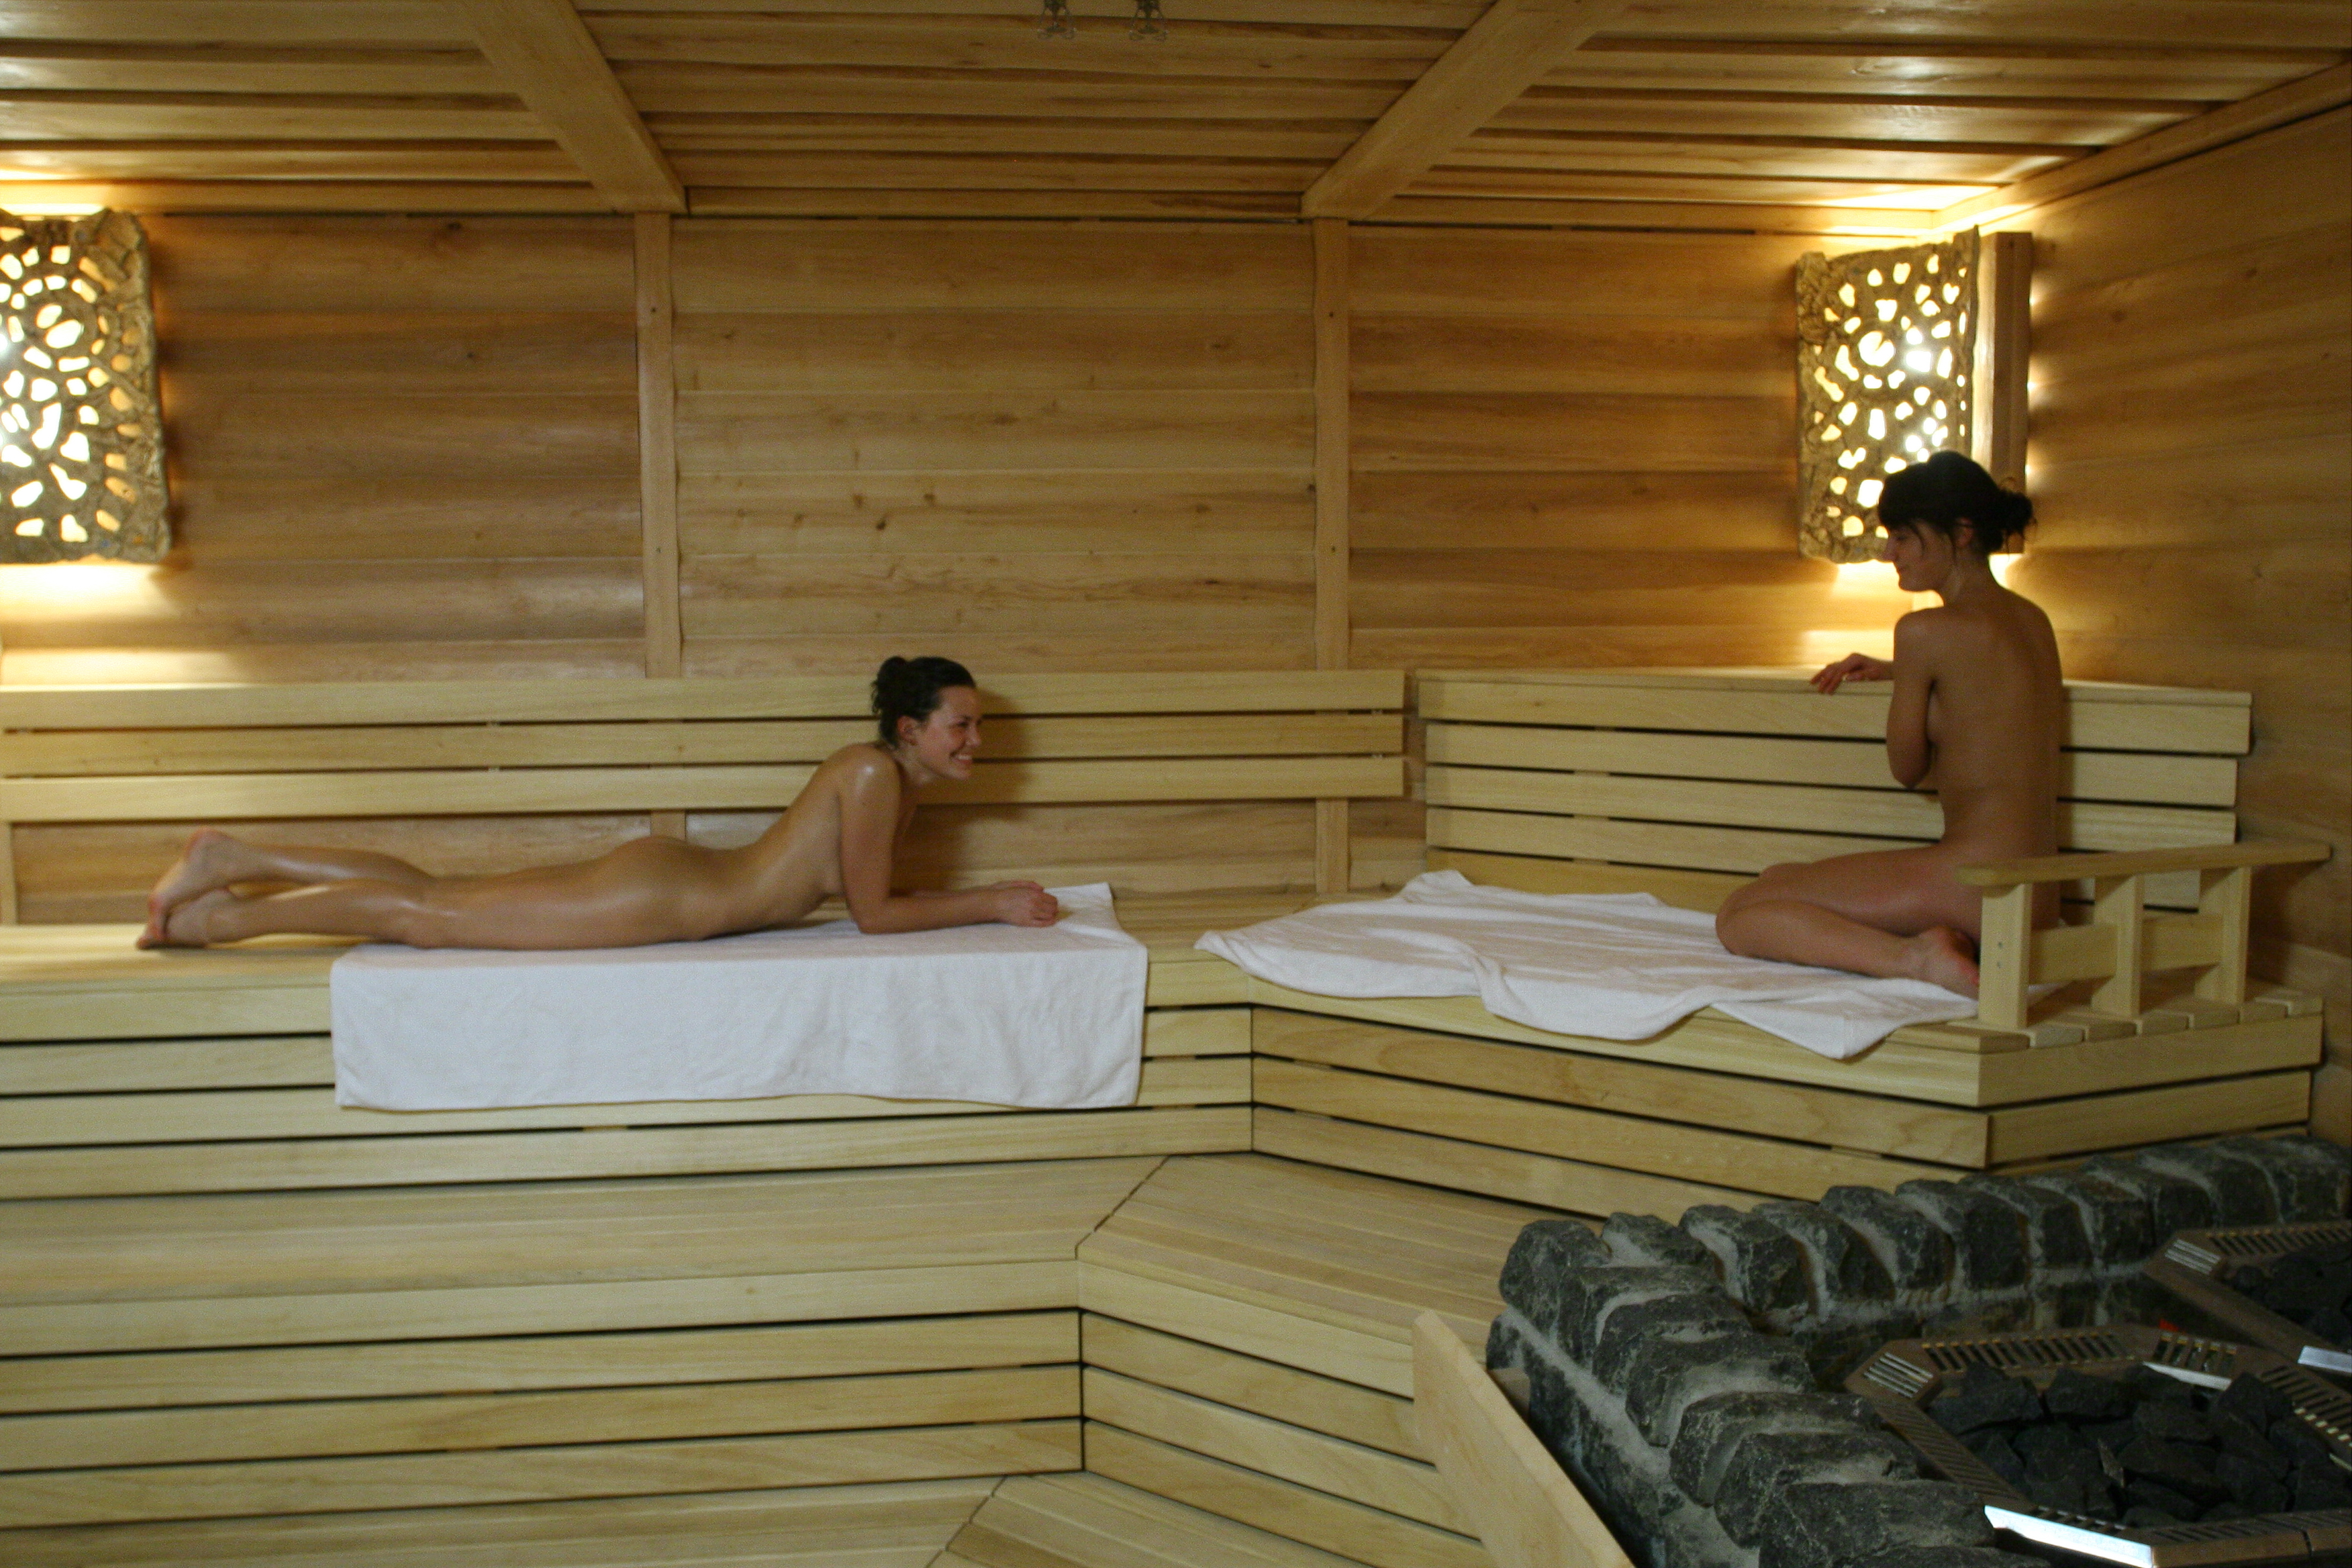 Russian Bath Bathhouse With Steam 92